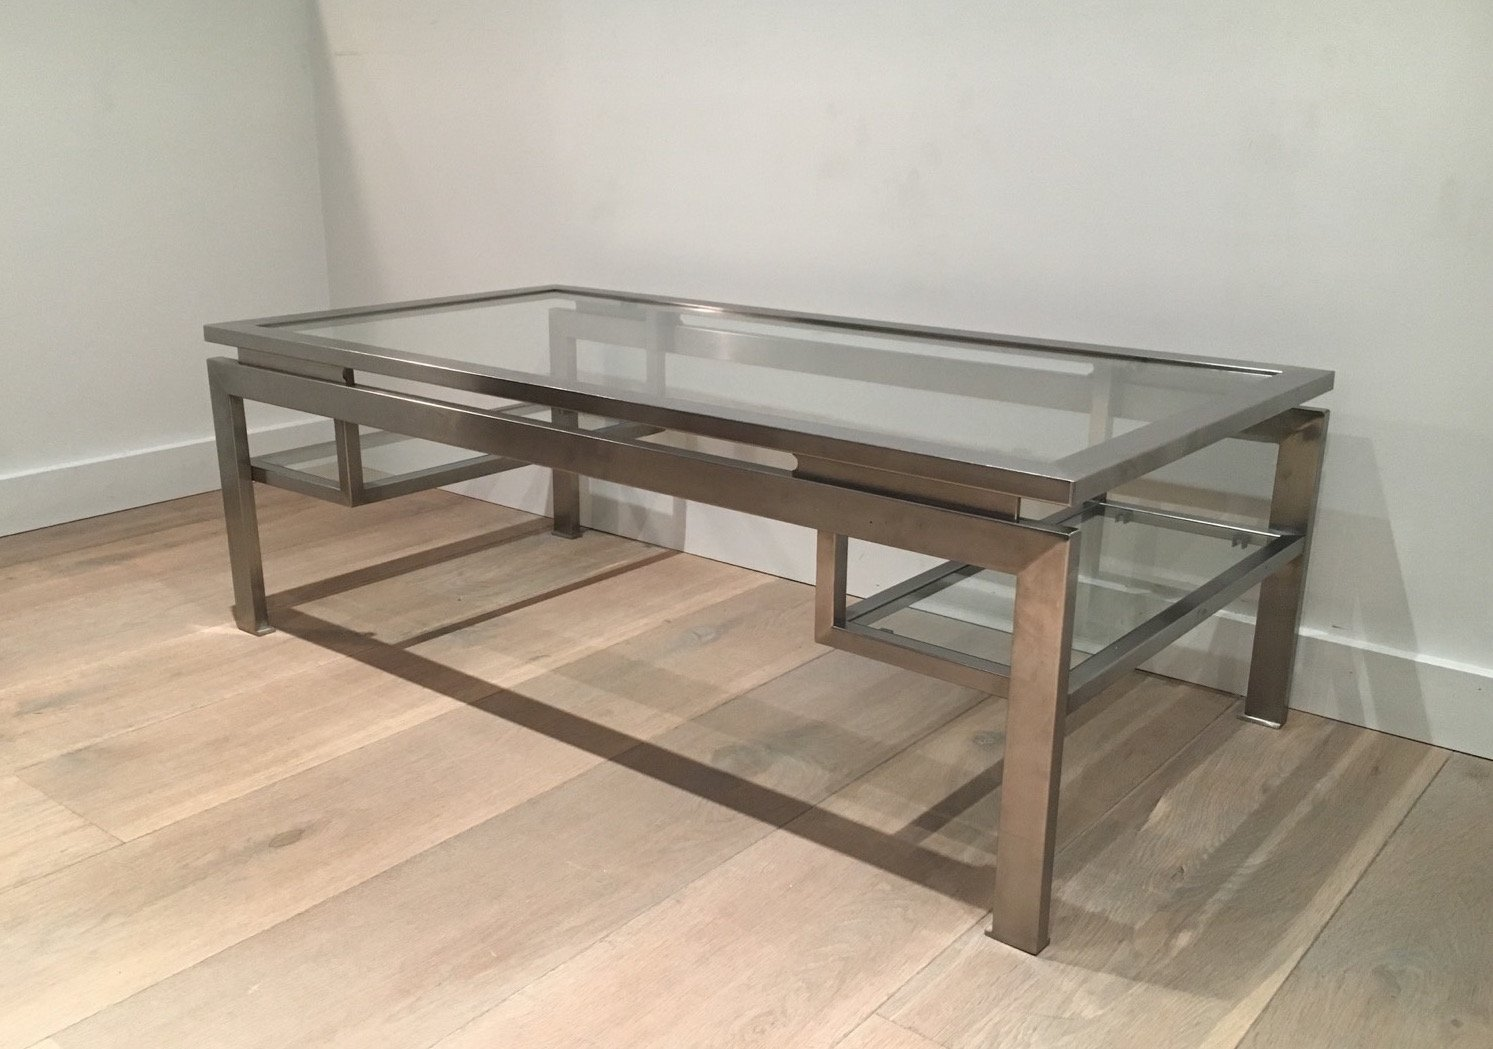 Modernist Brushed Metal Coffee Table By Guy Lefèvre 3 Previous